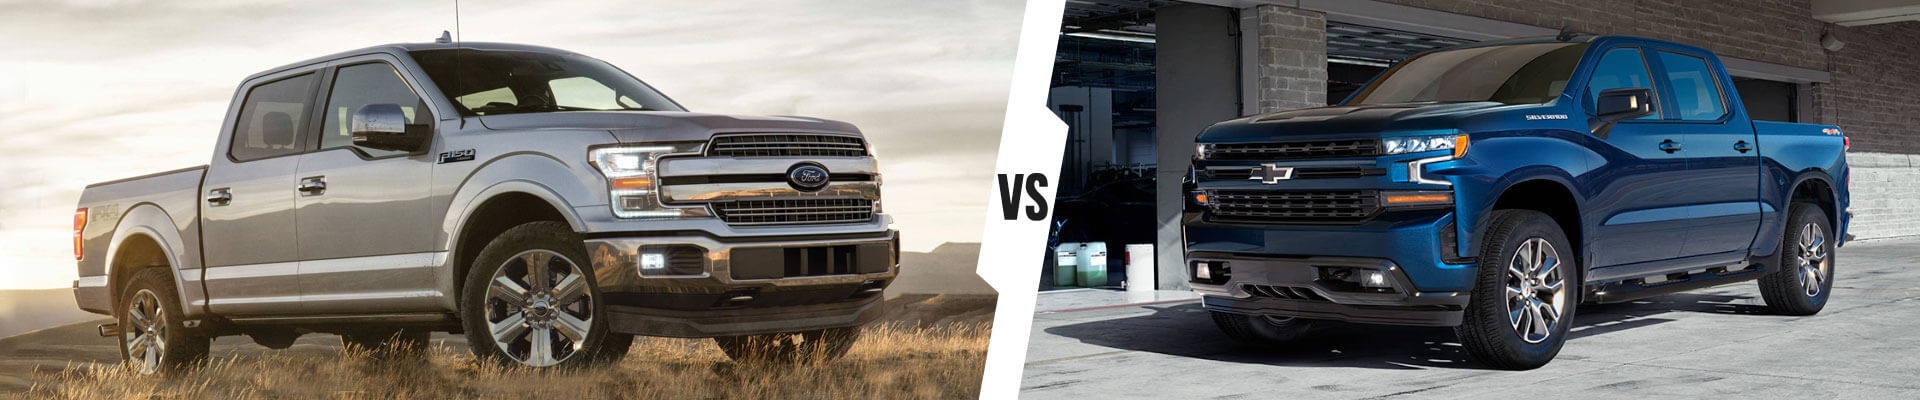 How the 2020 Chevrolet Silverado 1500 and the 2019 Ford F-150 Compare